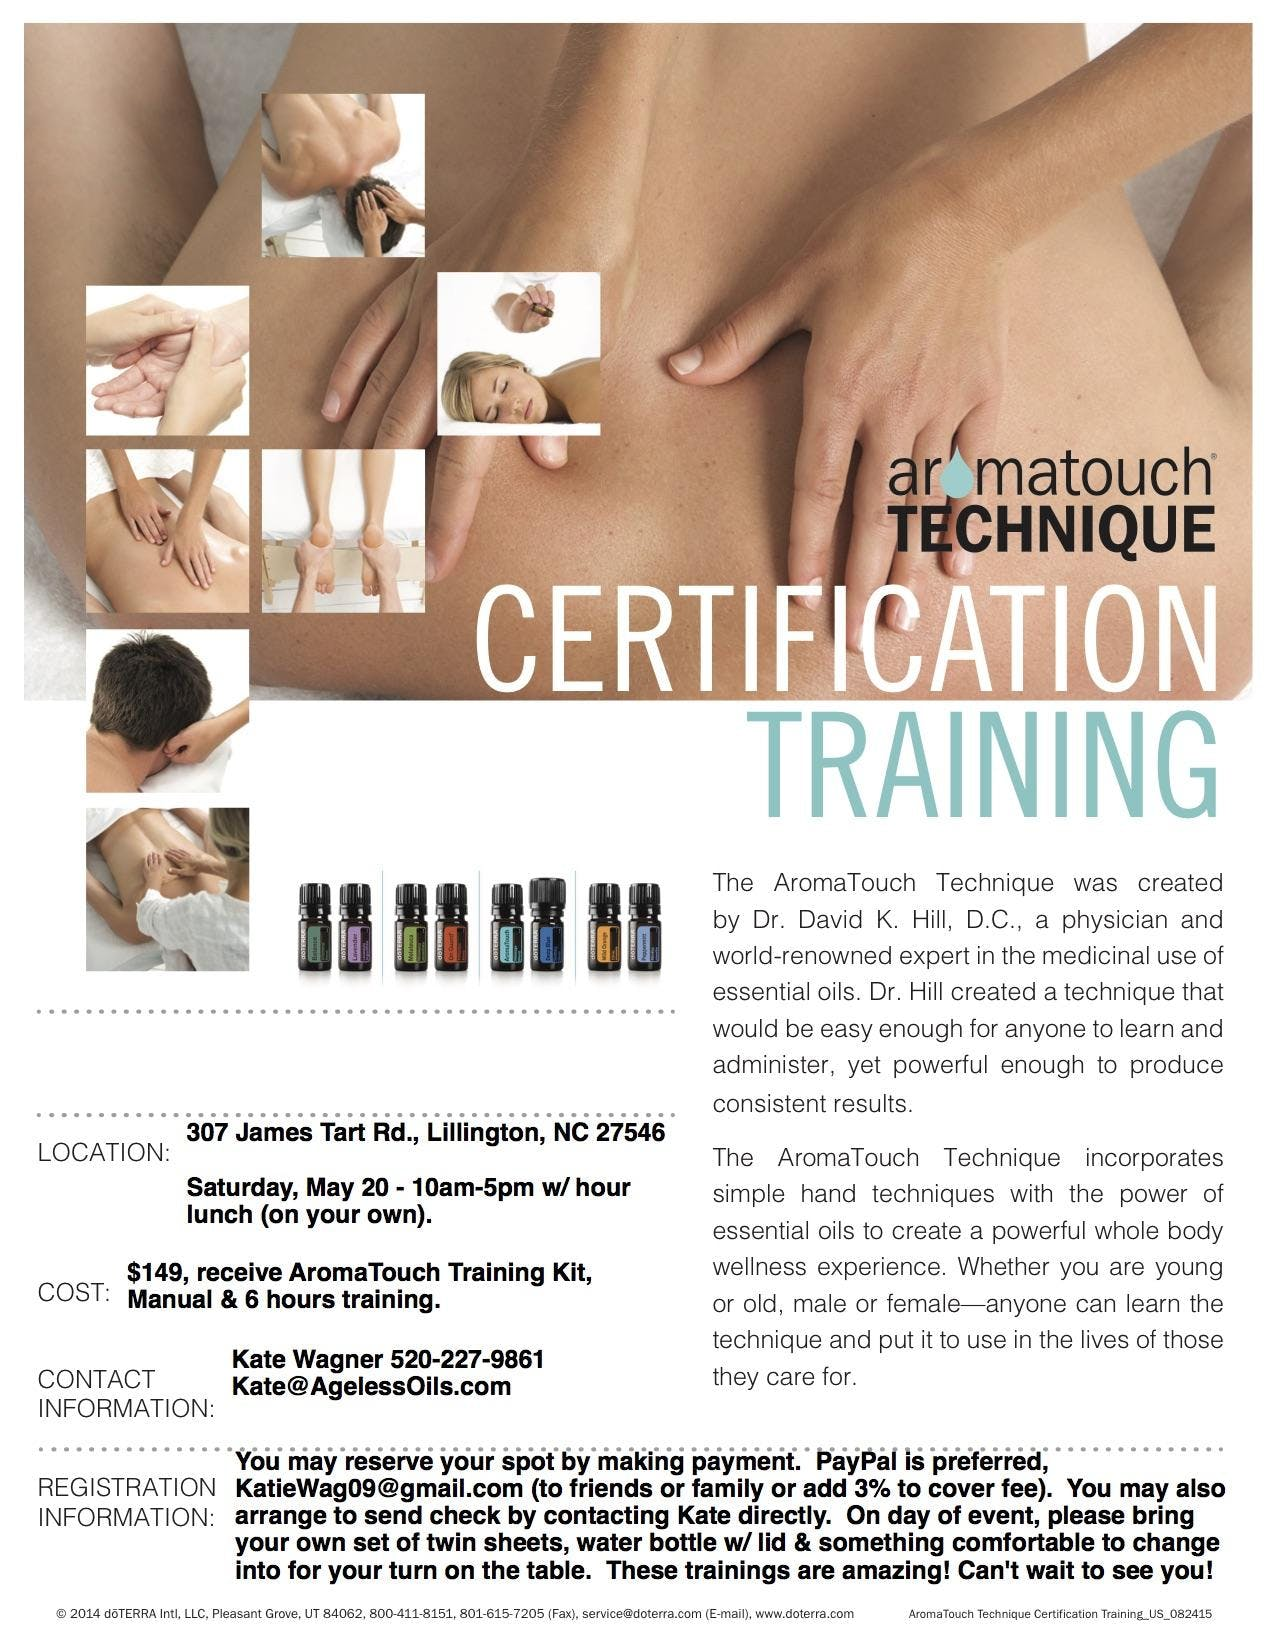 AromaTouch Training with Kate Wagner Aug. 18t